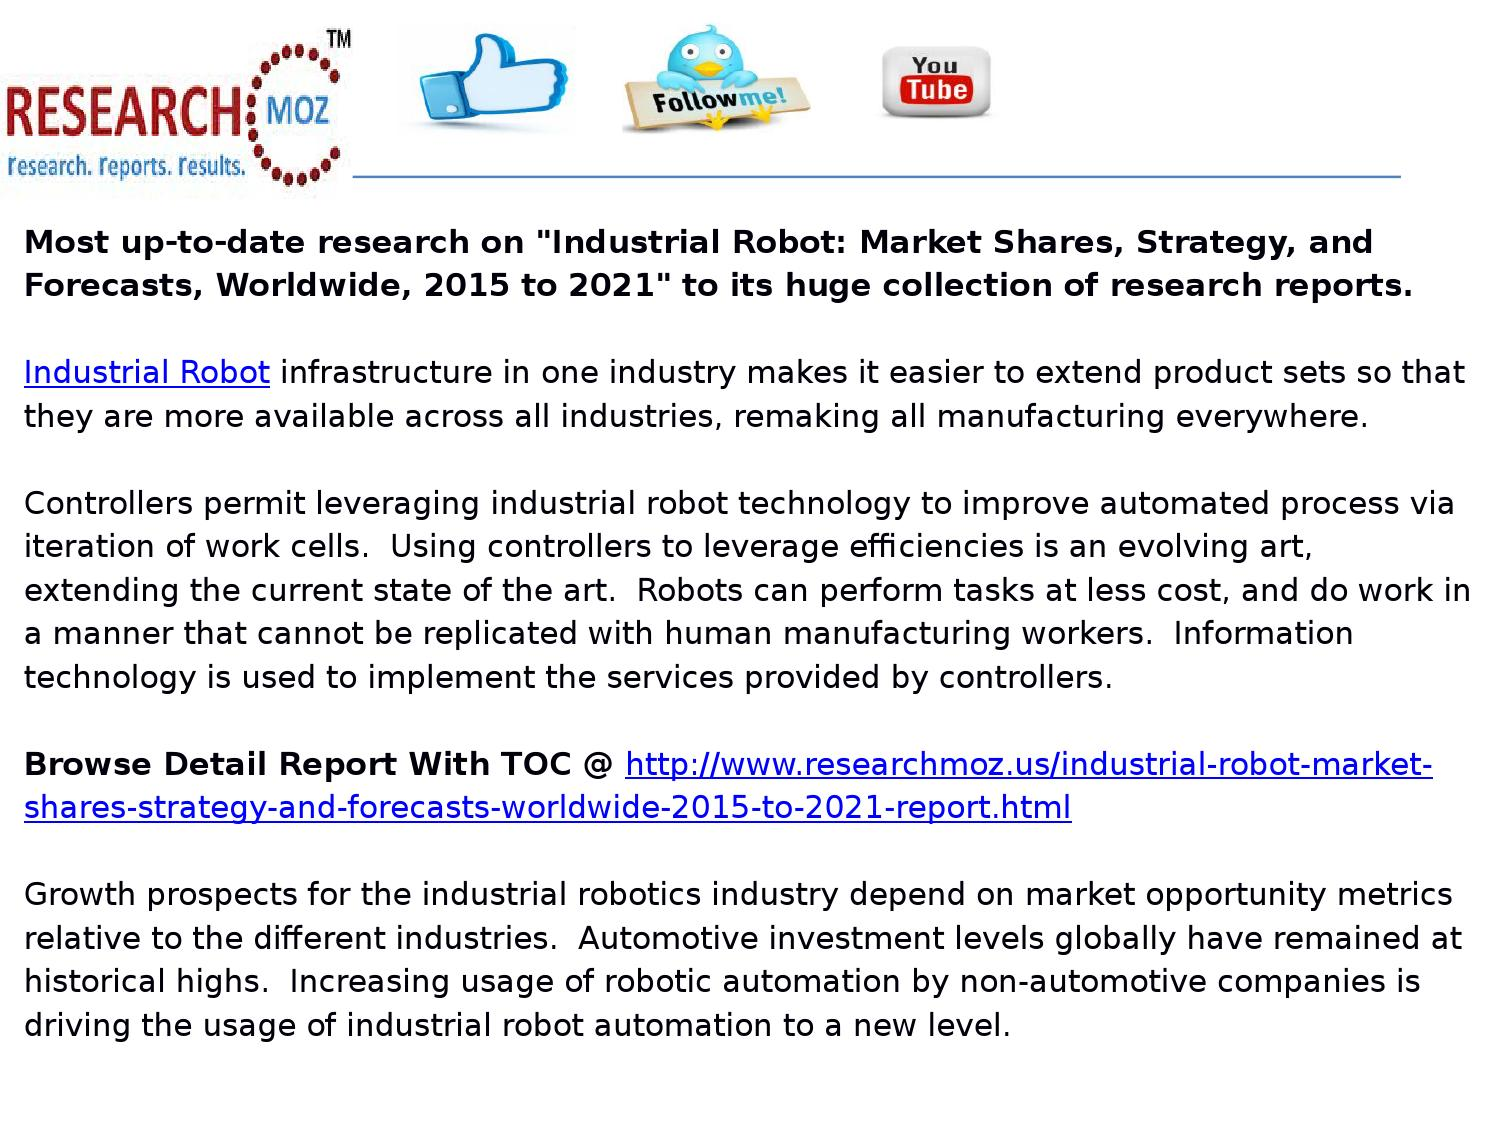 Industrial robot: market shares, strategy, and forecasts